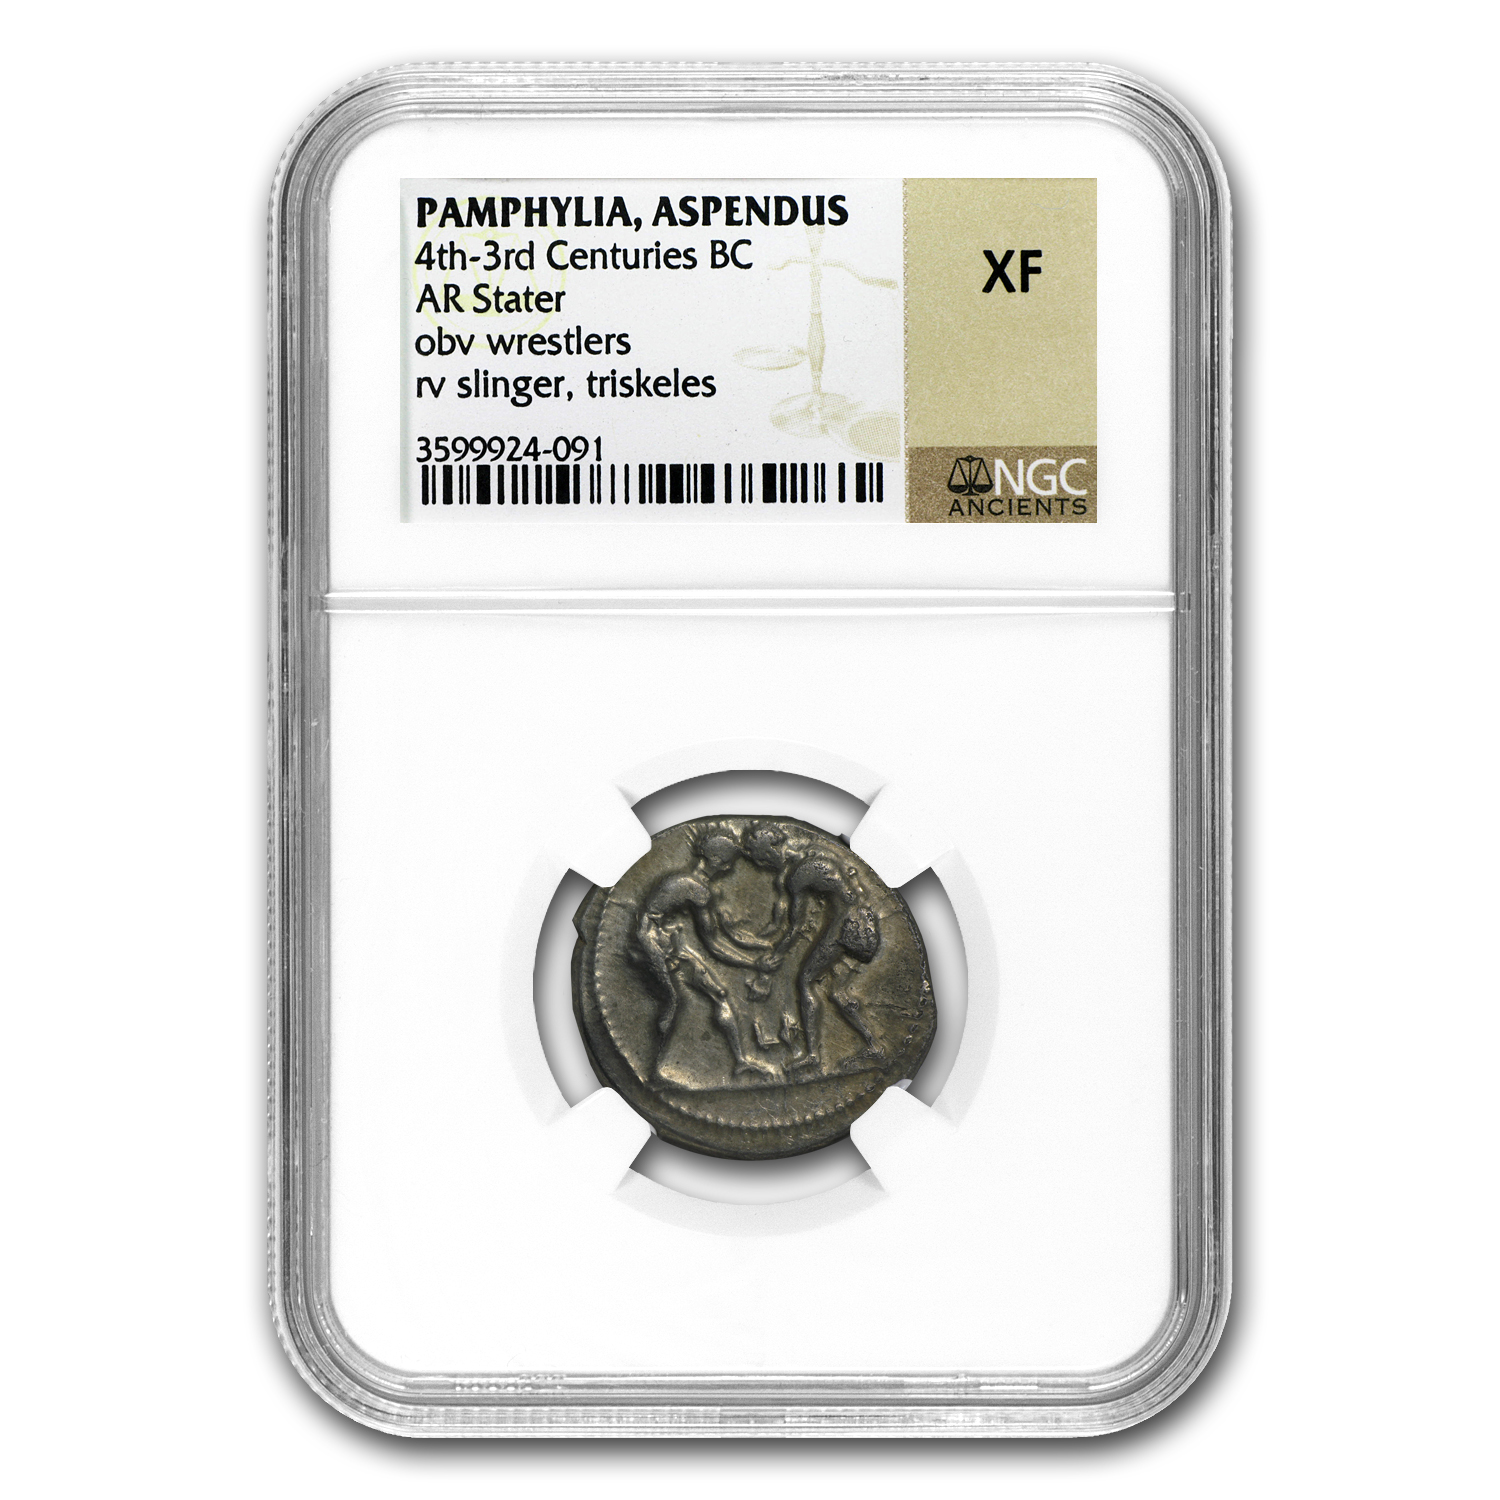 Pamphylia Aspendus AR Stater (4th-3rd Cent. BC) XF NGC